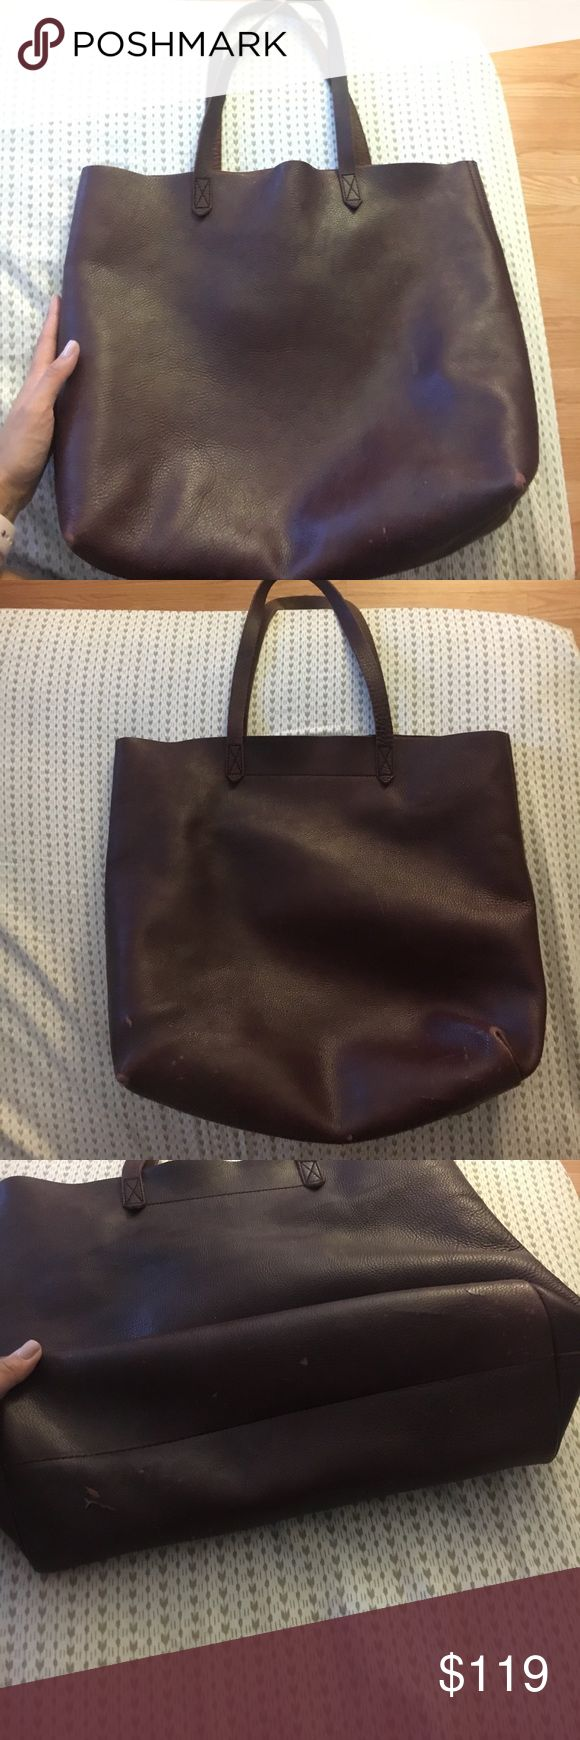 "Madewell transport tote in Drk Cabernet Used but still tons of life! Made of semi vegetable-tanned leather Interior pocket. 8 3/10"" handle drop. 14""H x 14""W x 6""D. Madewell Bags Totes"